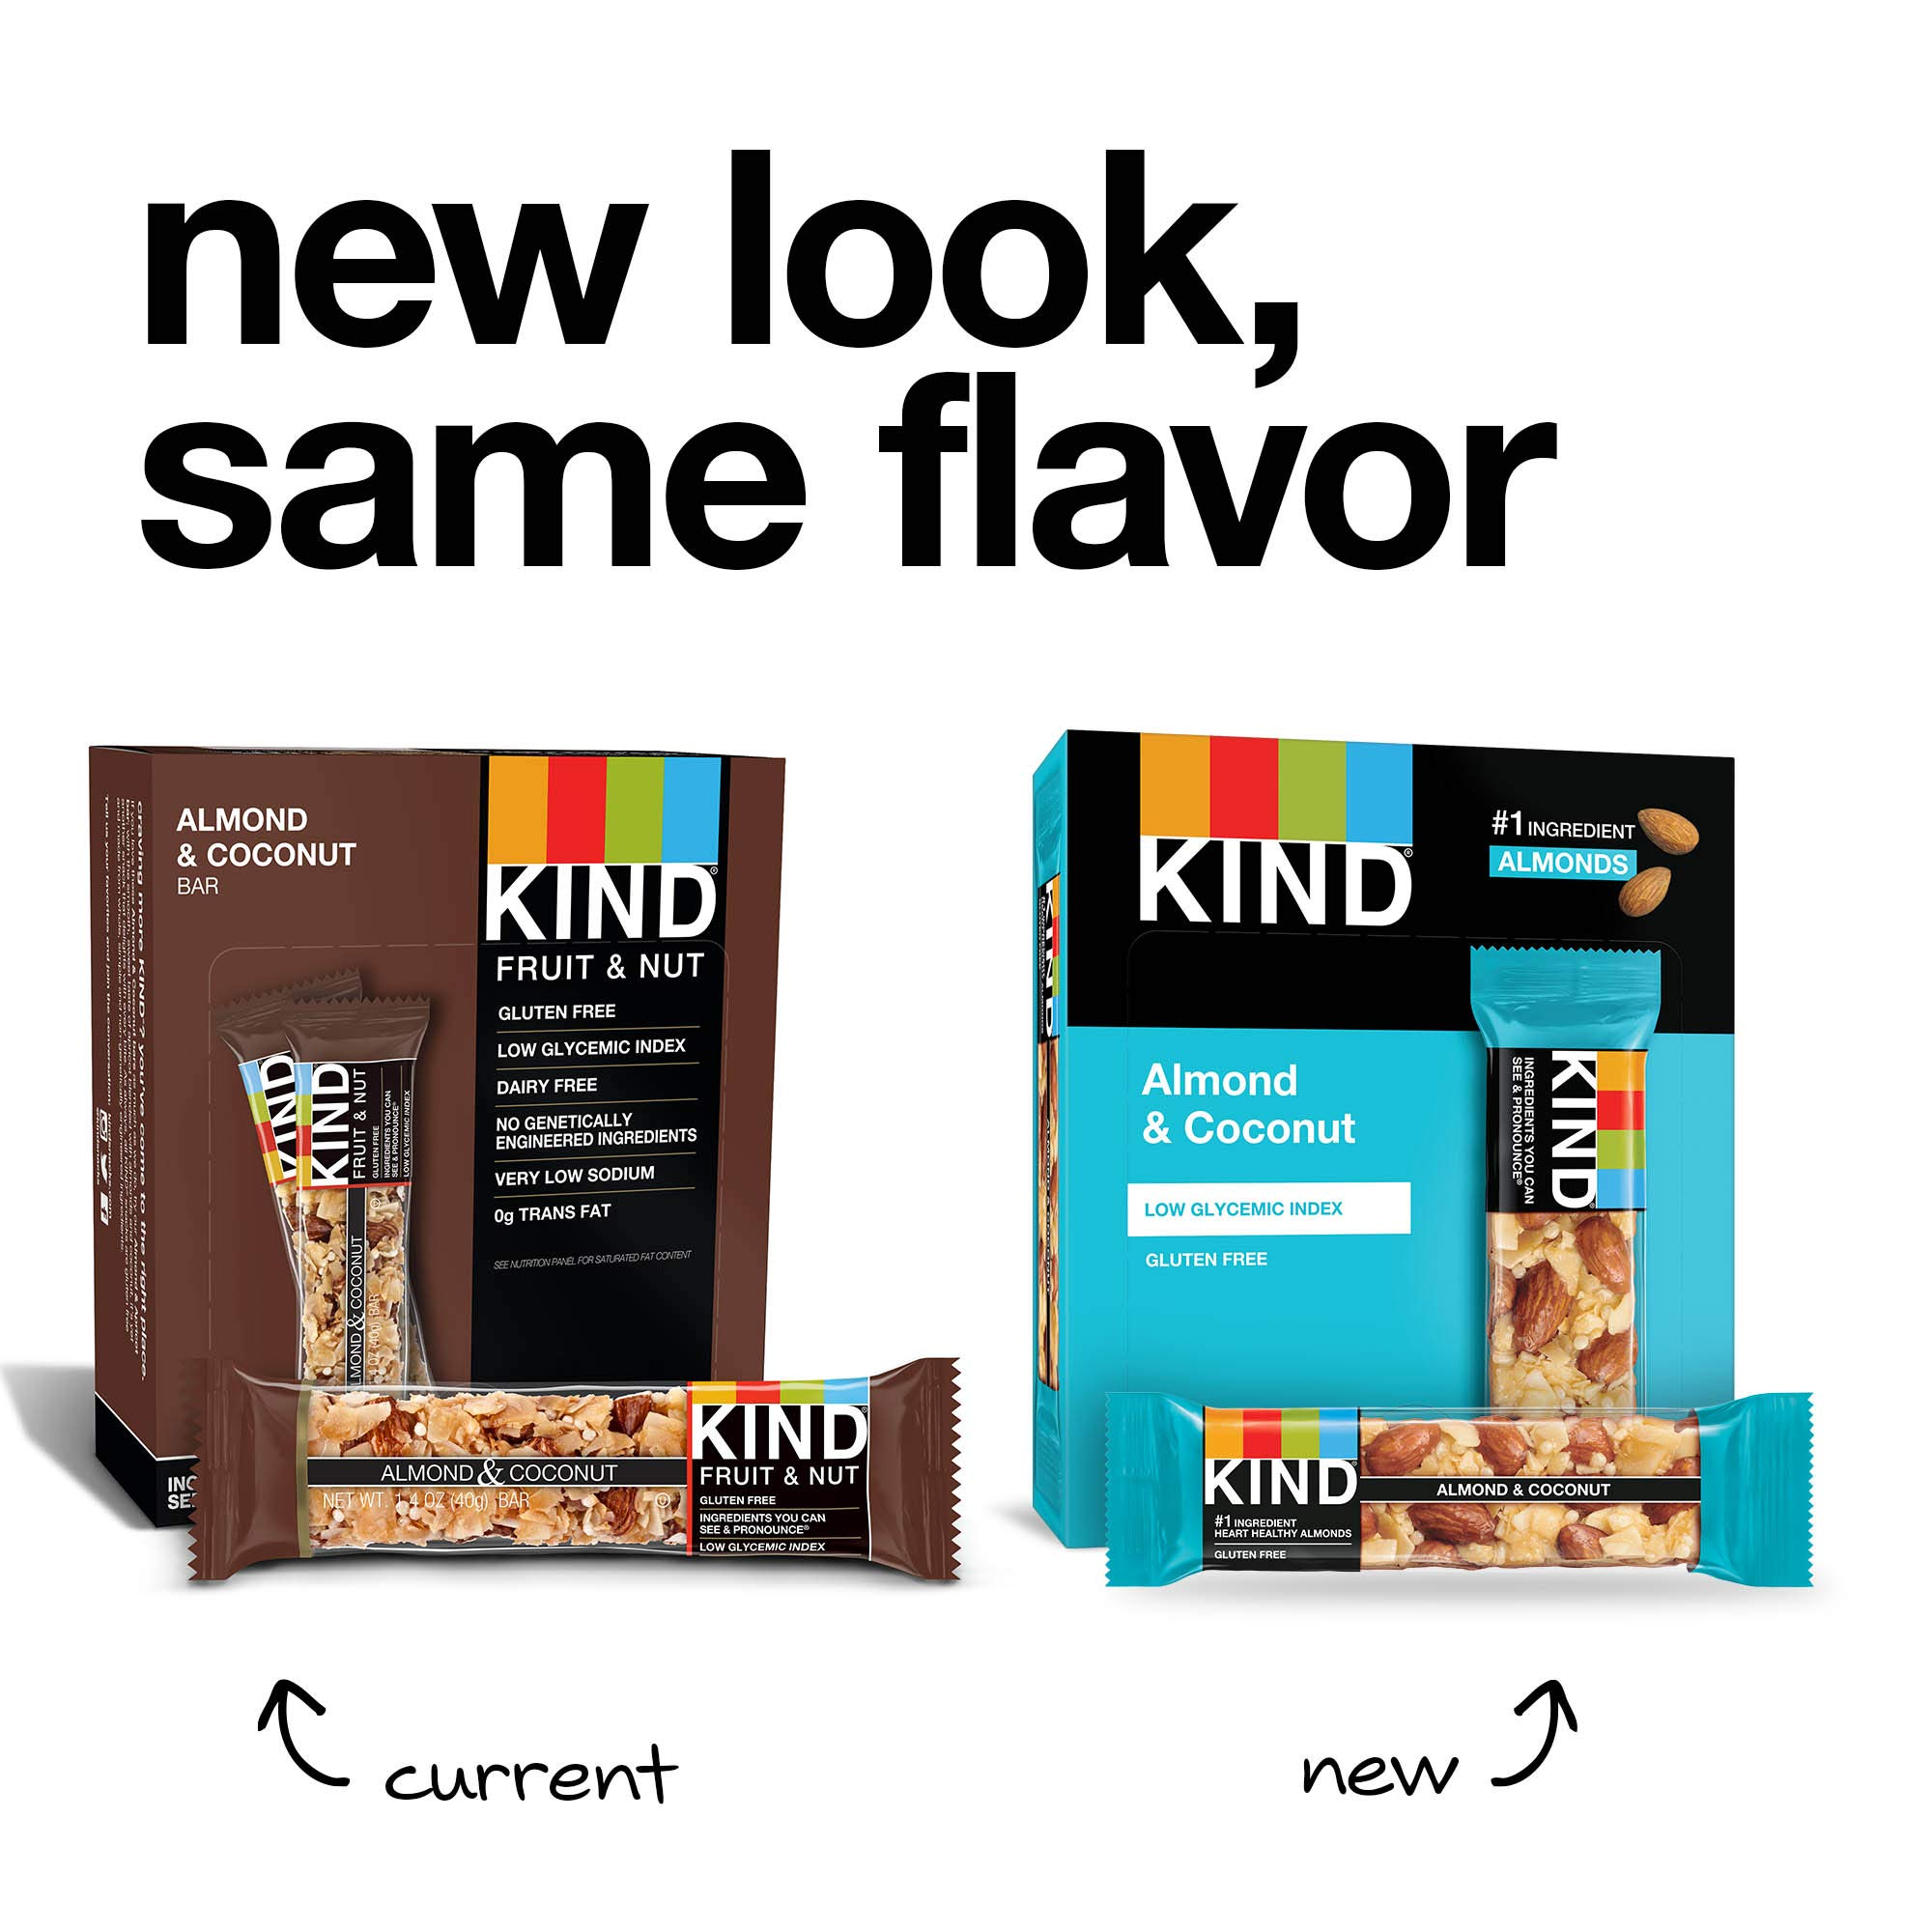 KIND Bars, Almond & Coconut, Gluten Free, 1.4oz, 12 Count by KIND (Image #4)